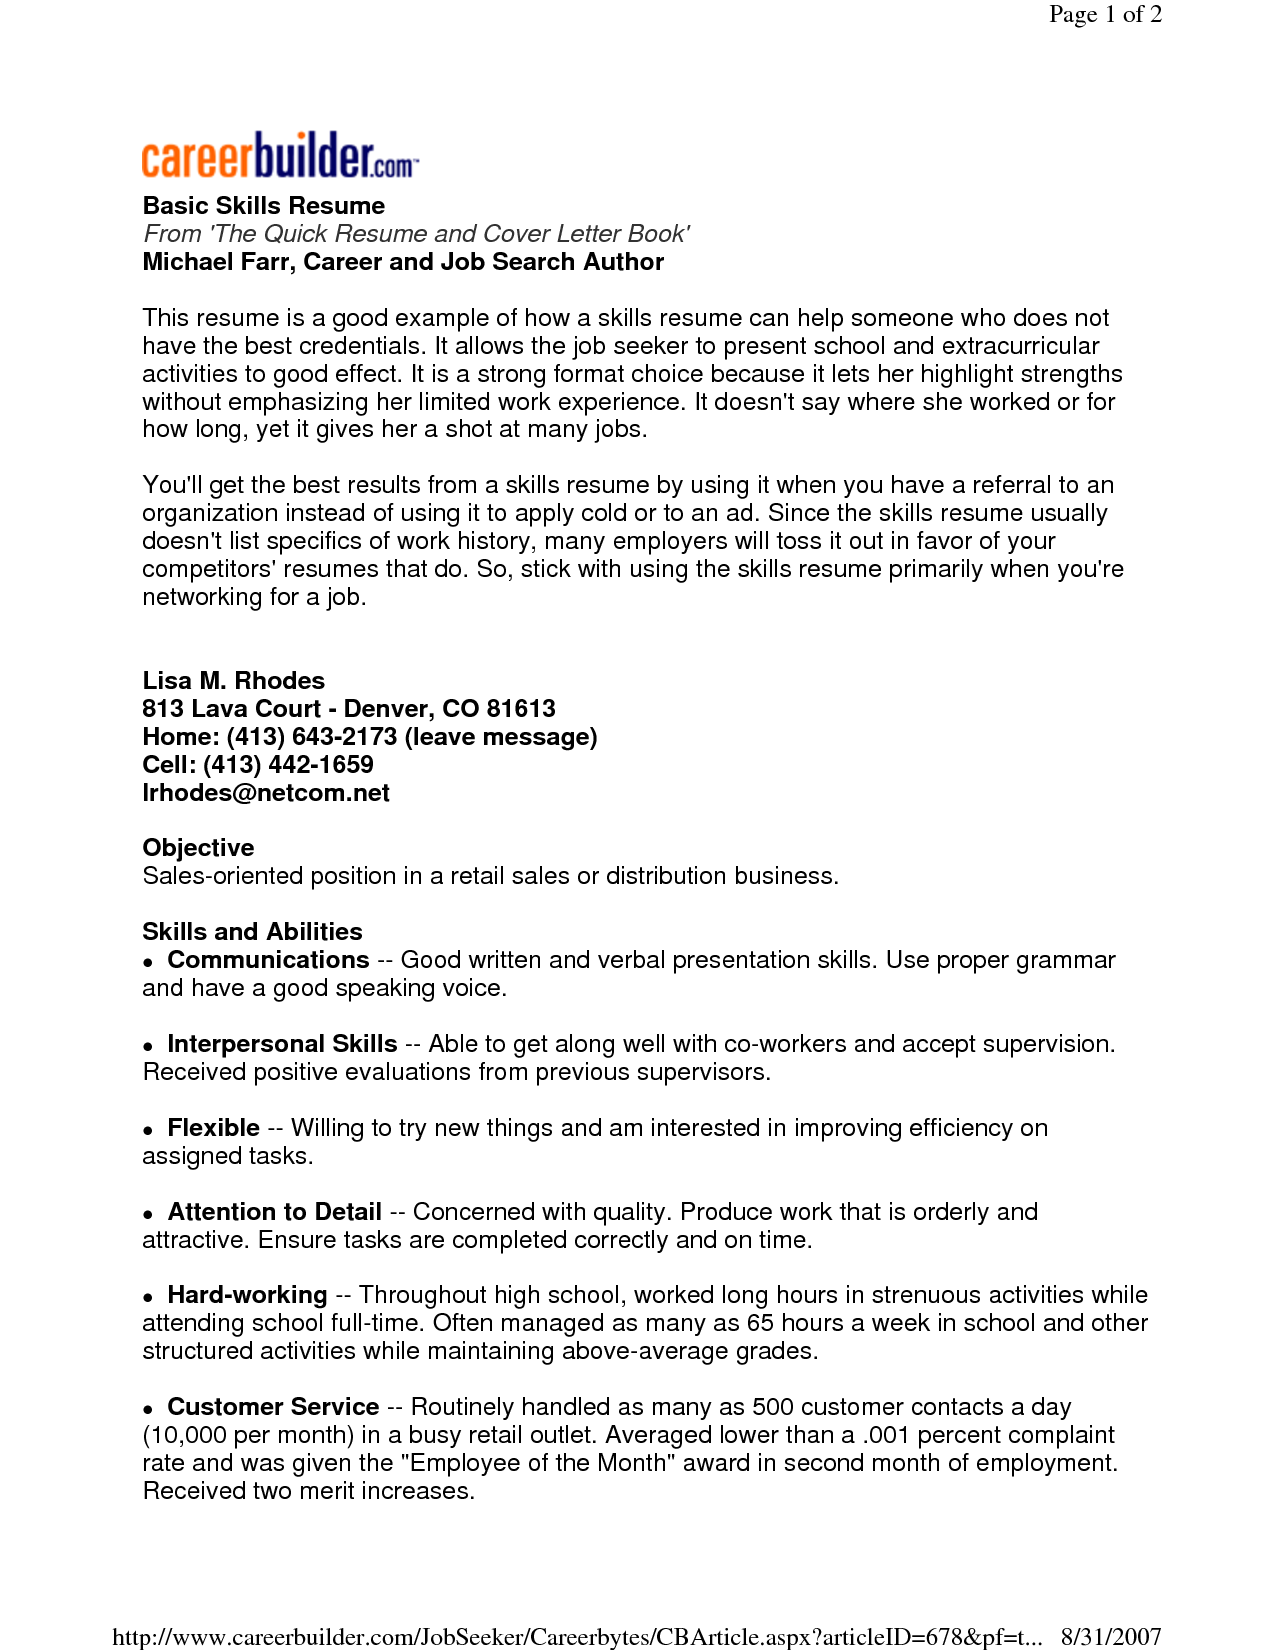 Creative Inspiration Good Resumes Examples    Key Skills Resume